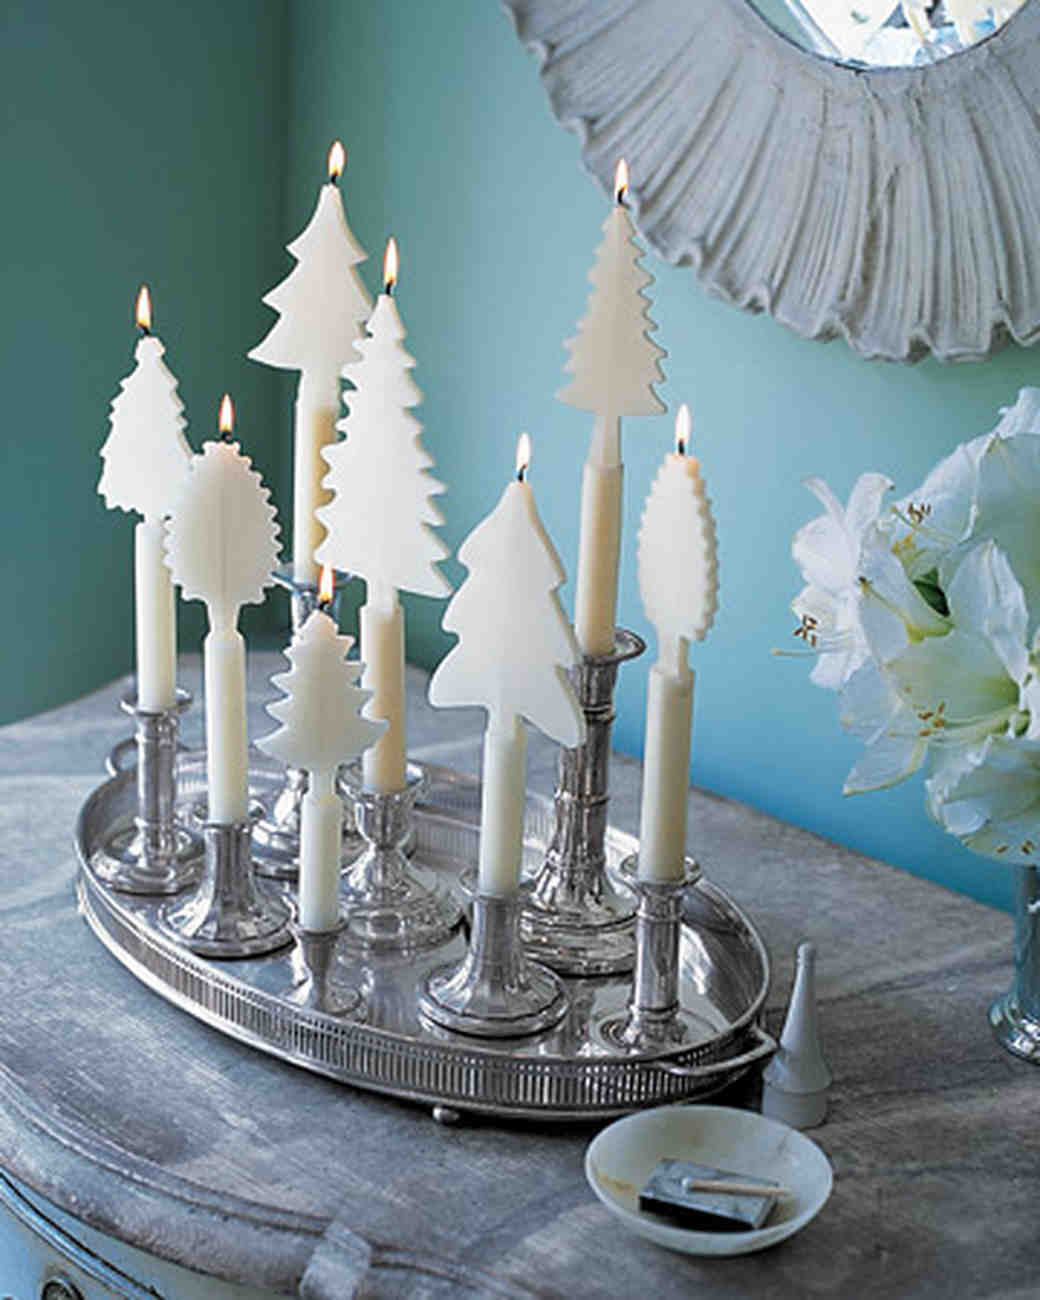 White Tree-Shaped Candles